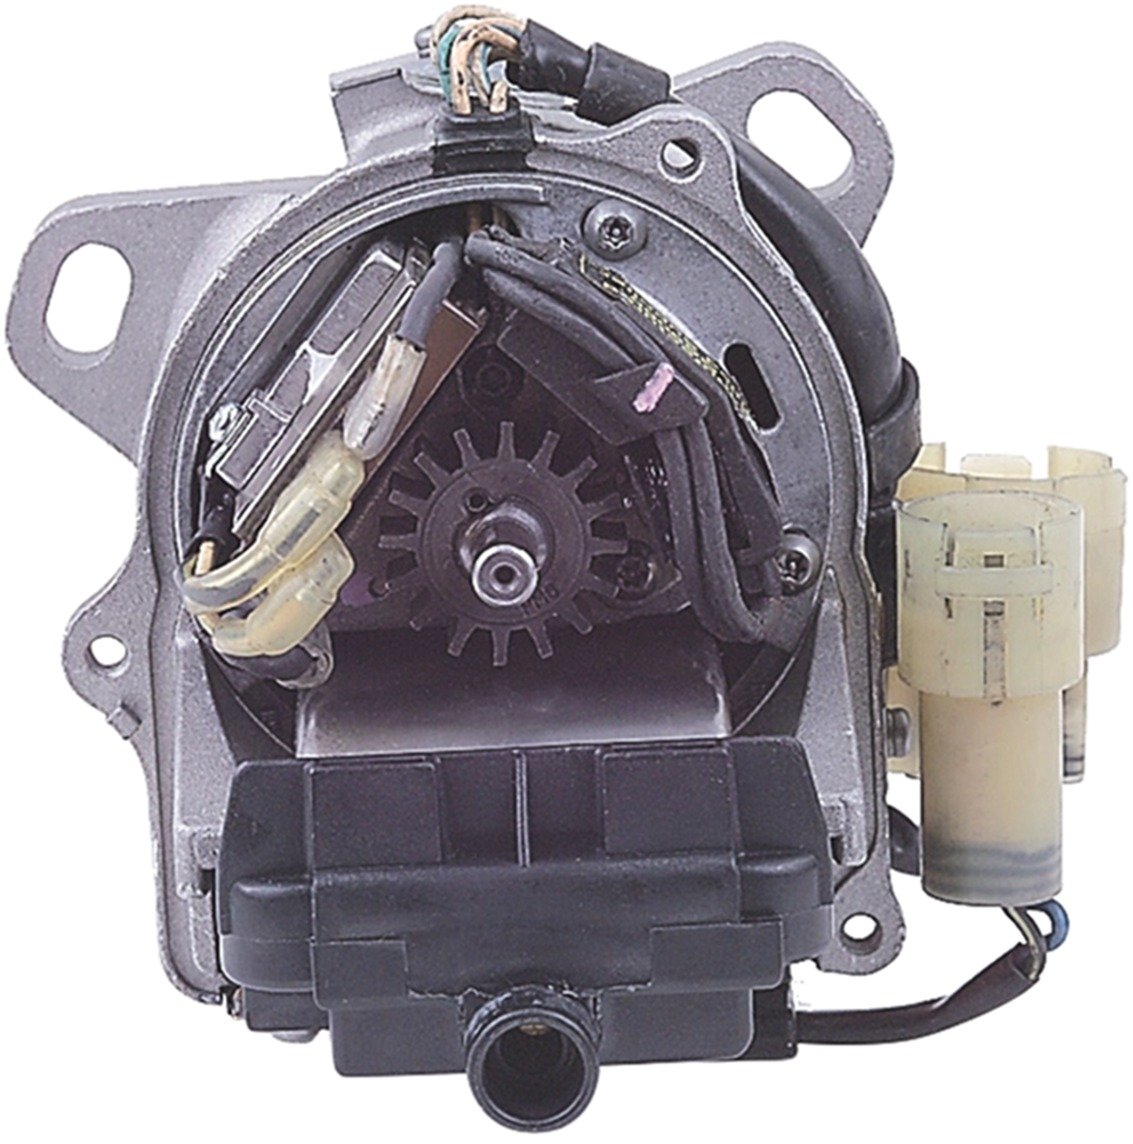 Cardone 31-17418 Remanufactured Import Distributor A1 Cardone 3117418AAF